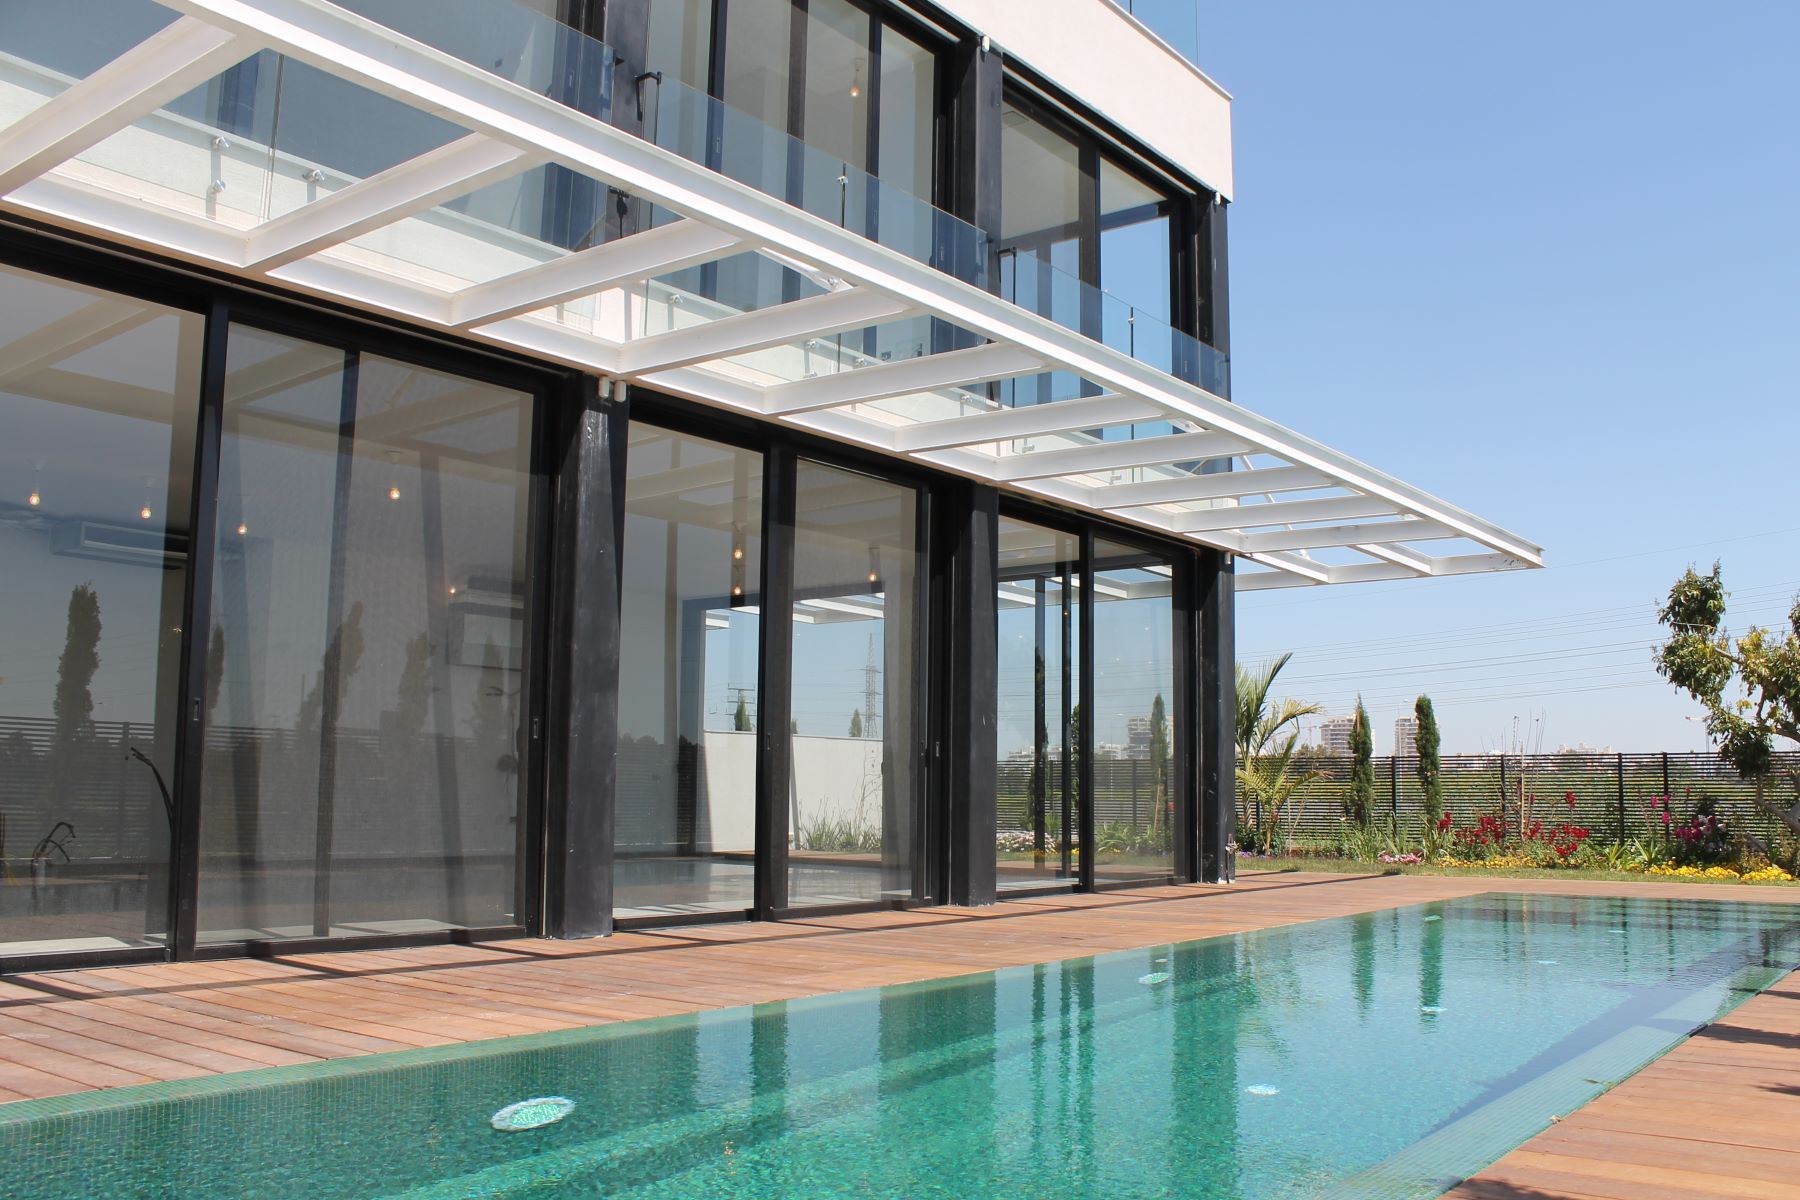 Single Family Home for Sale at Impressive and unique house in Herzlia B Herzliya, Israel Israel